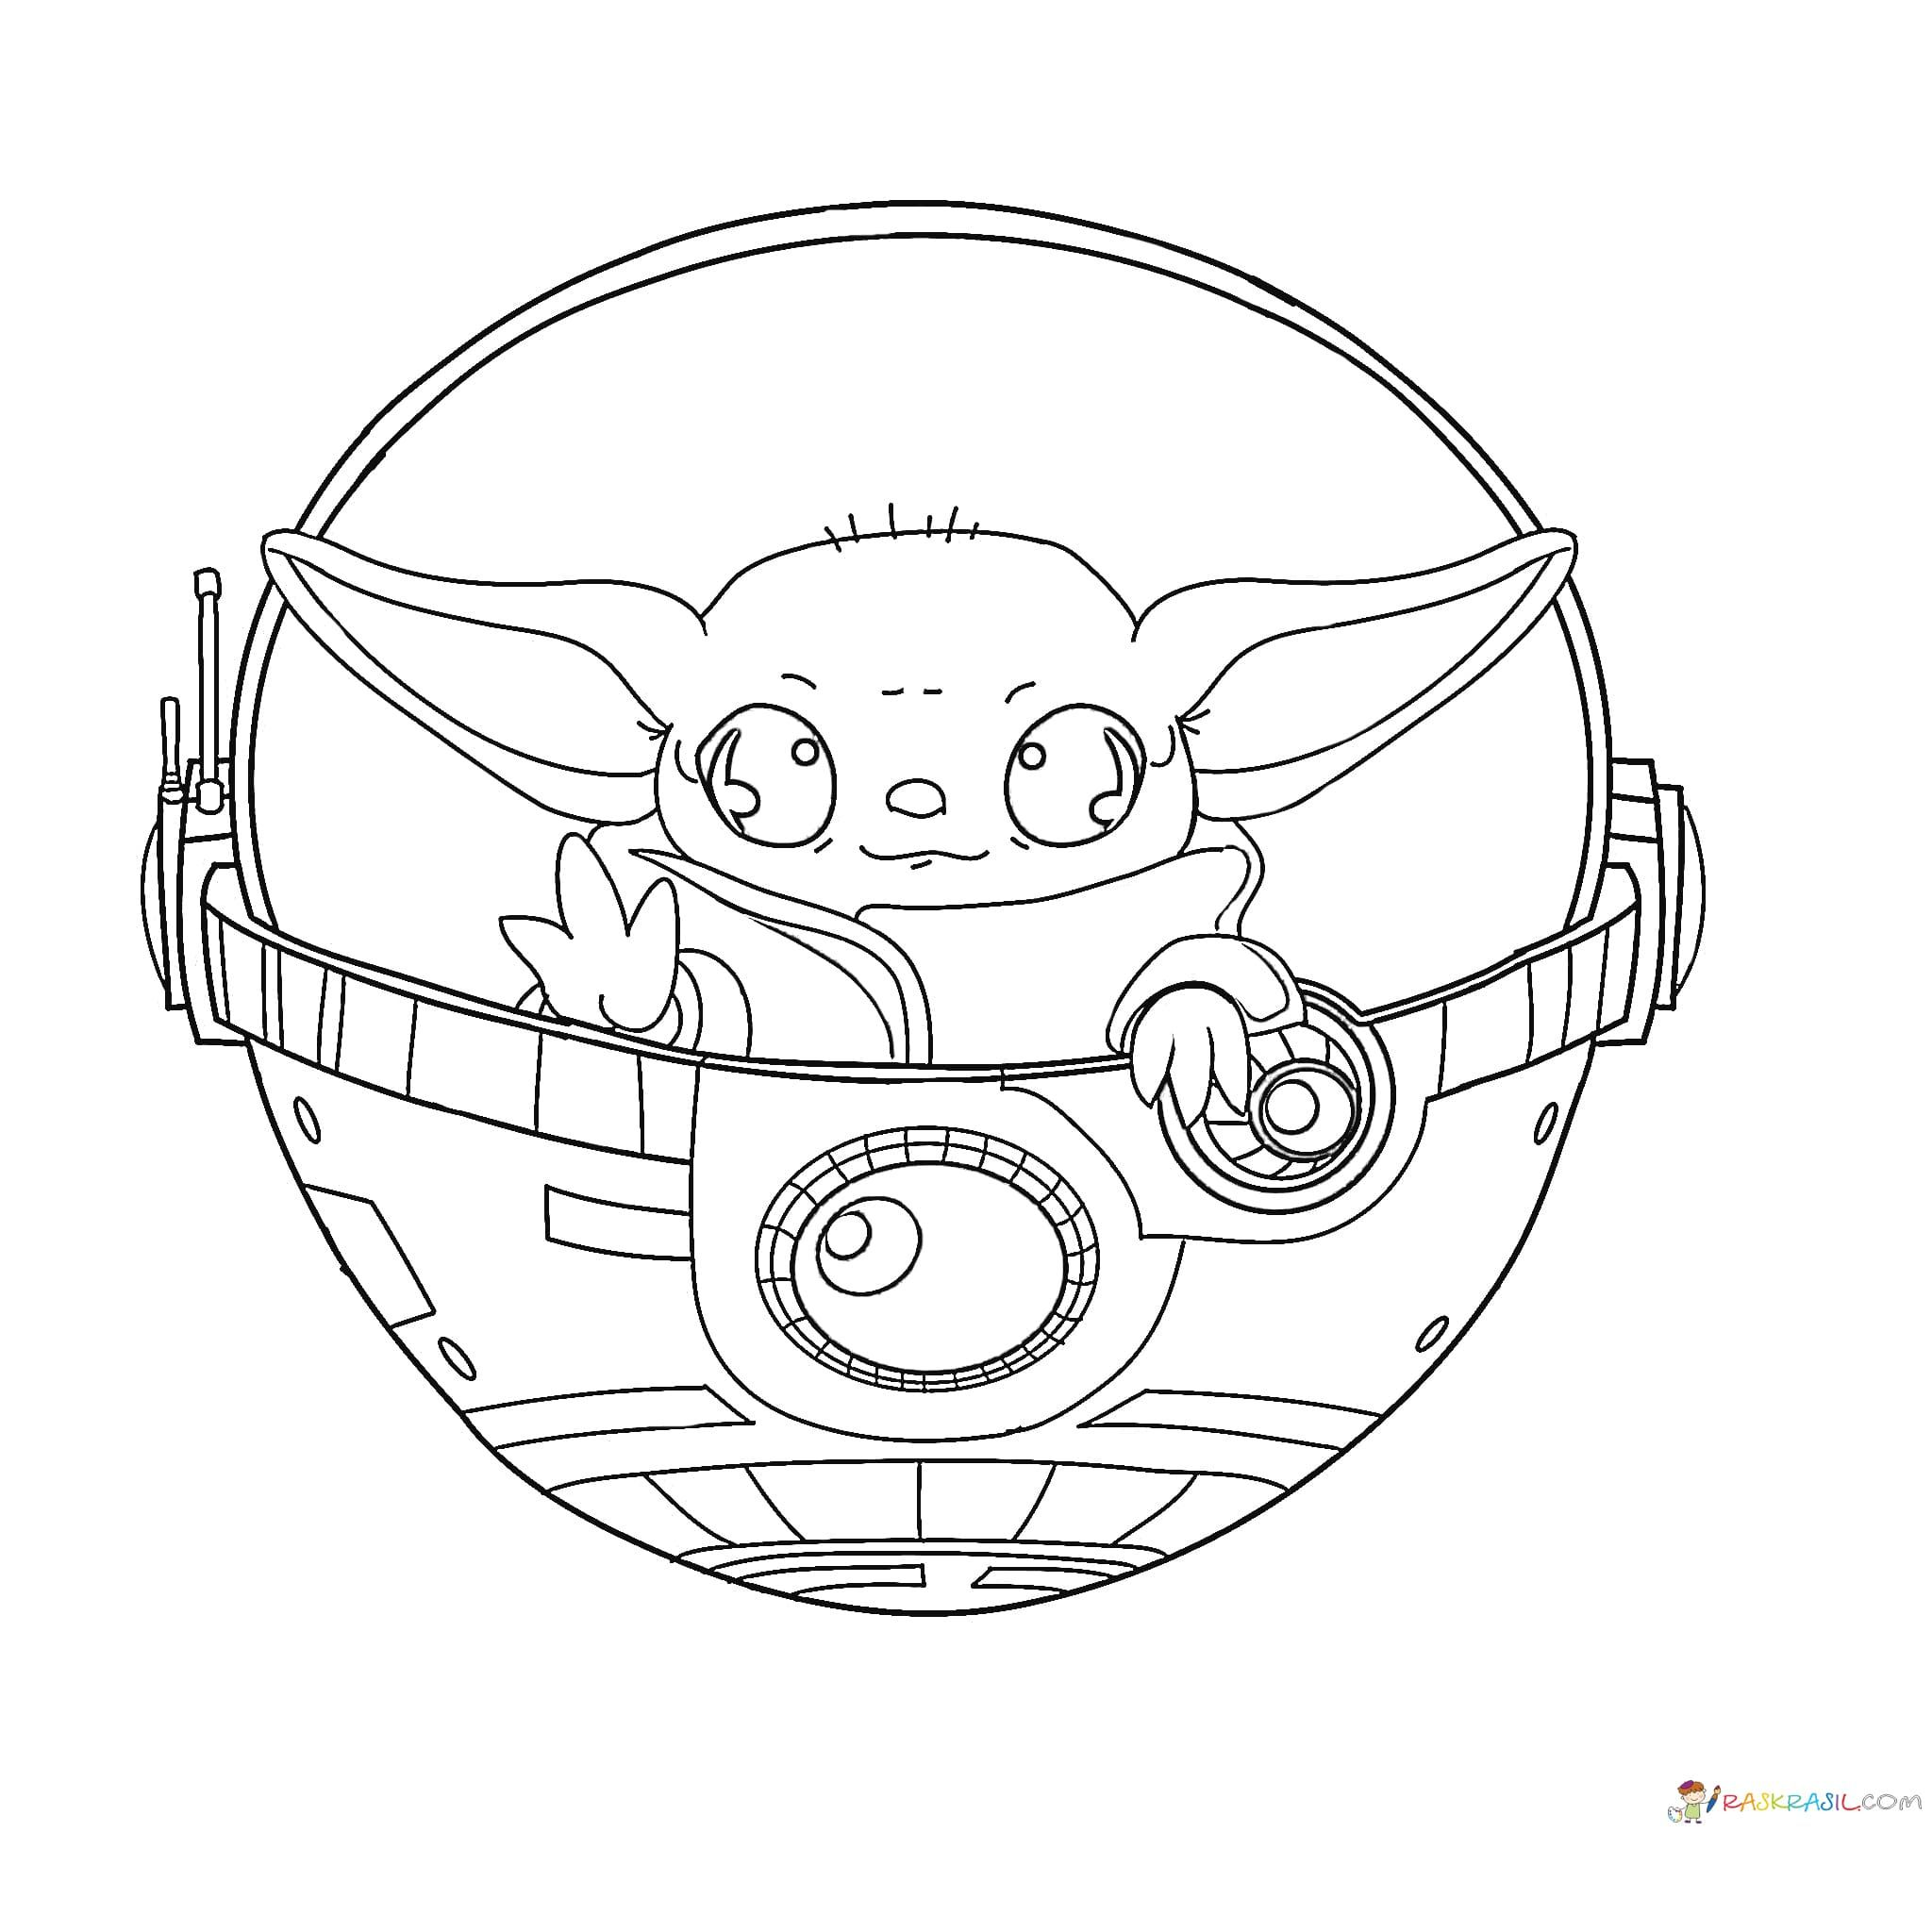 Coloring Pages Baby Yoda The Mandalorian And Baby Yoda Free In 2020 Coloring Pages Cool Coloring Pages Unique Coloring Pages